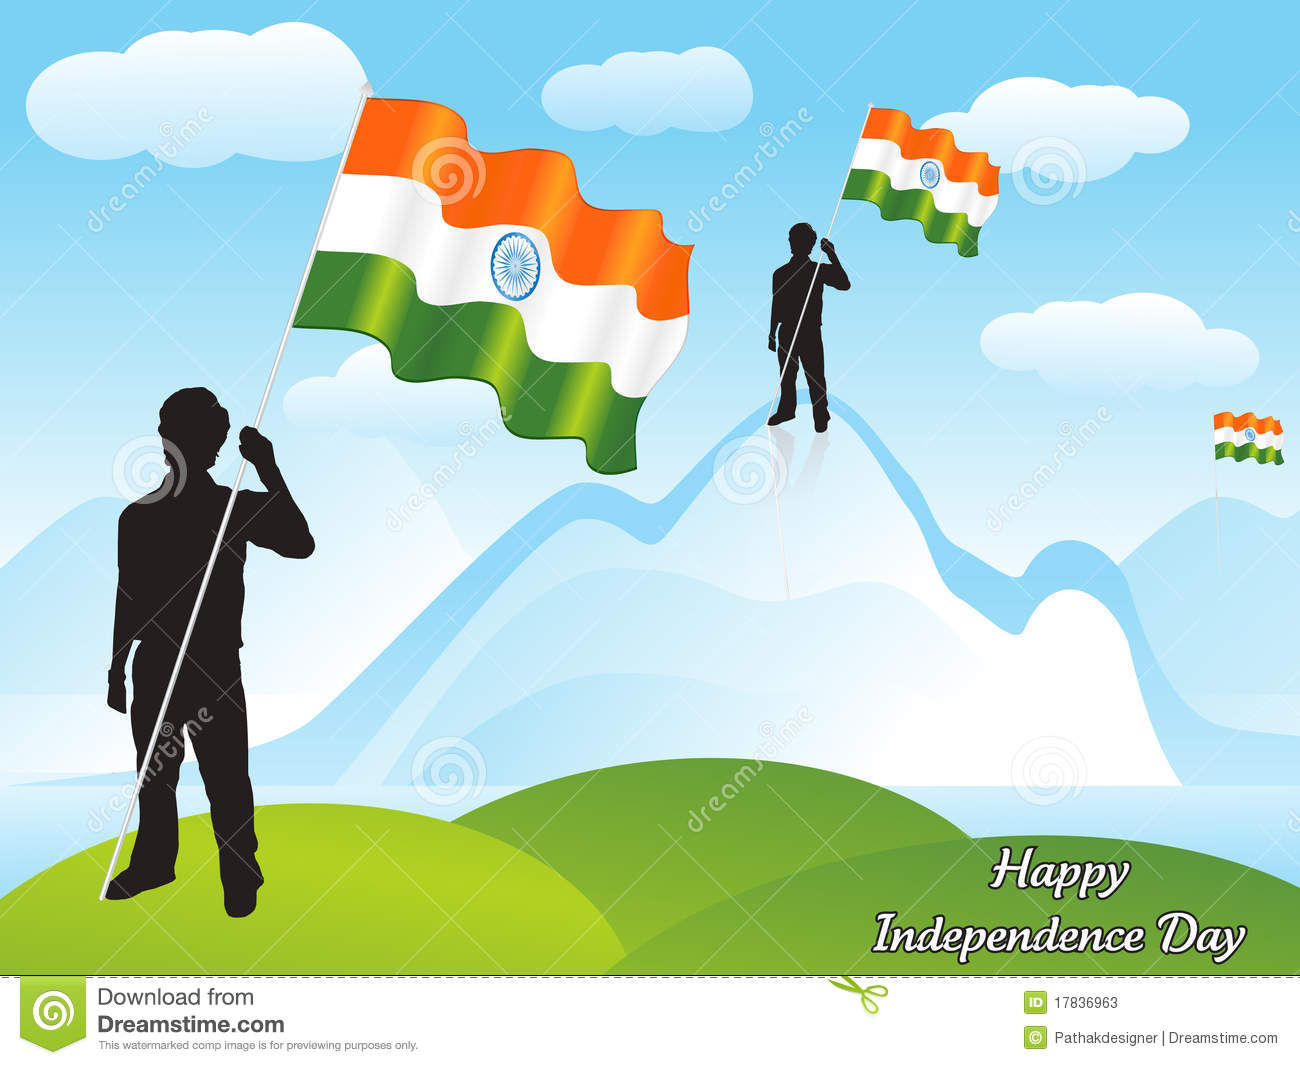 Wallpaper download republic day - Abstract Republic Day Wallpaper